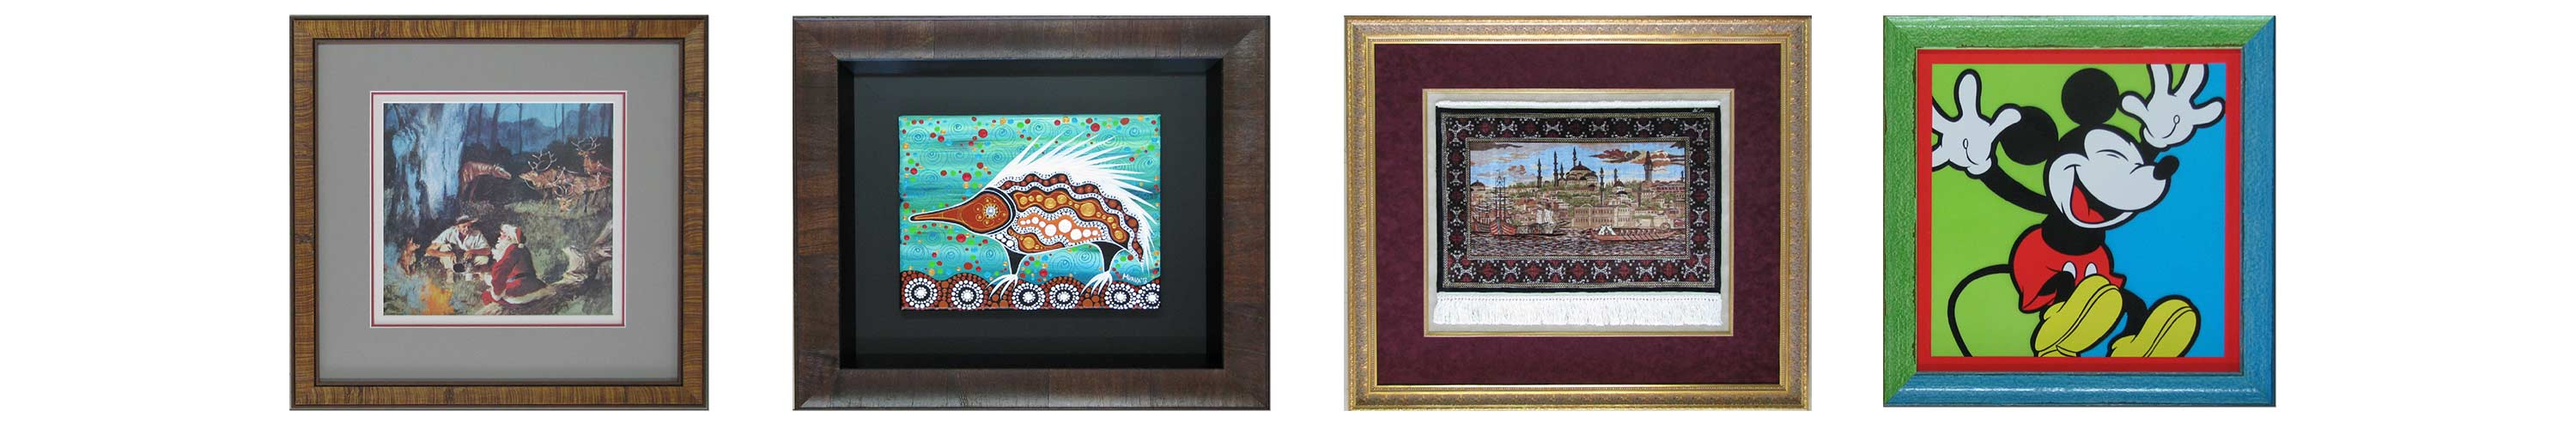 hall of frame art and needlework in frame